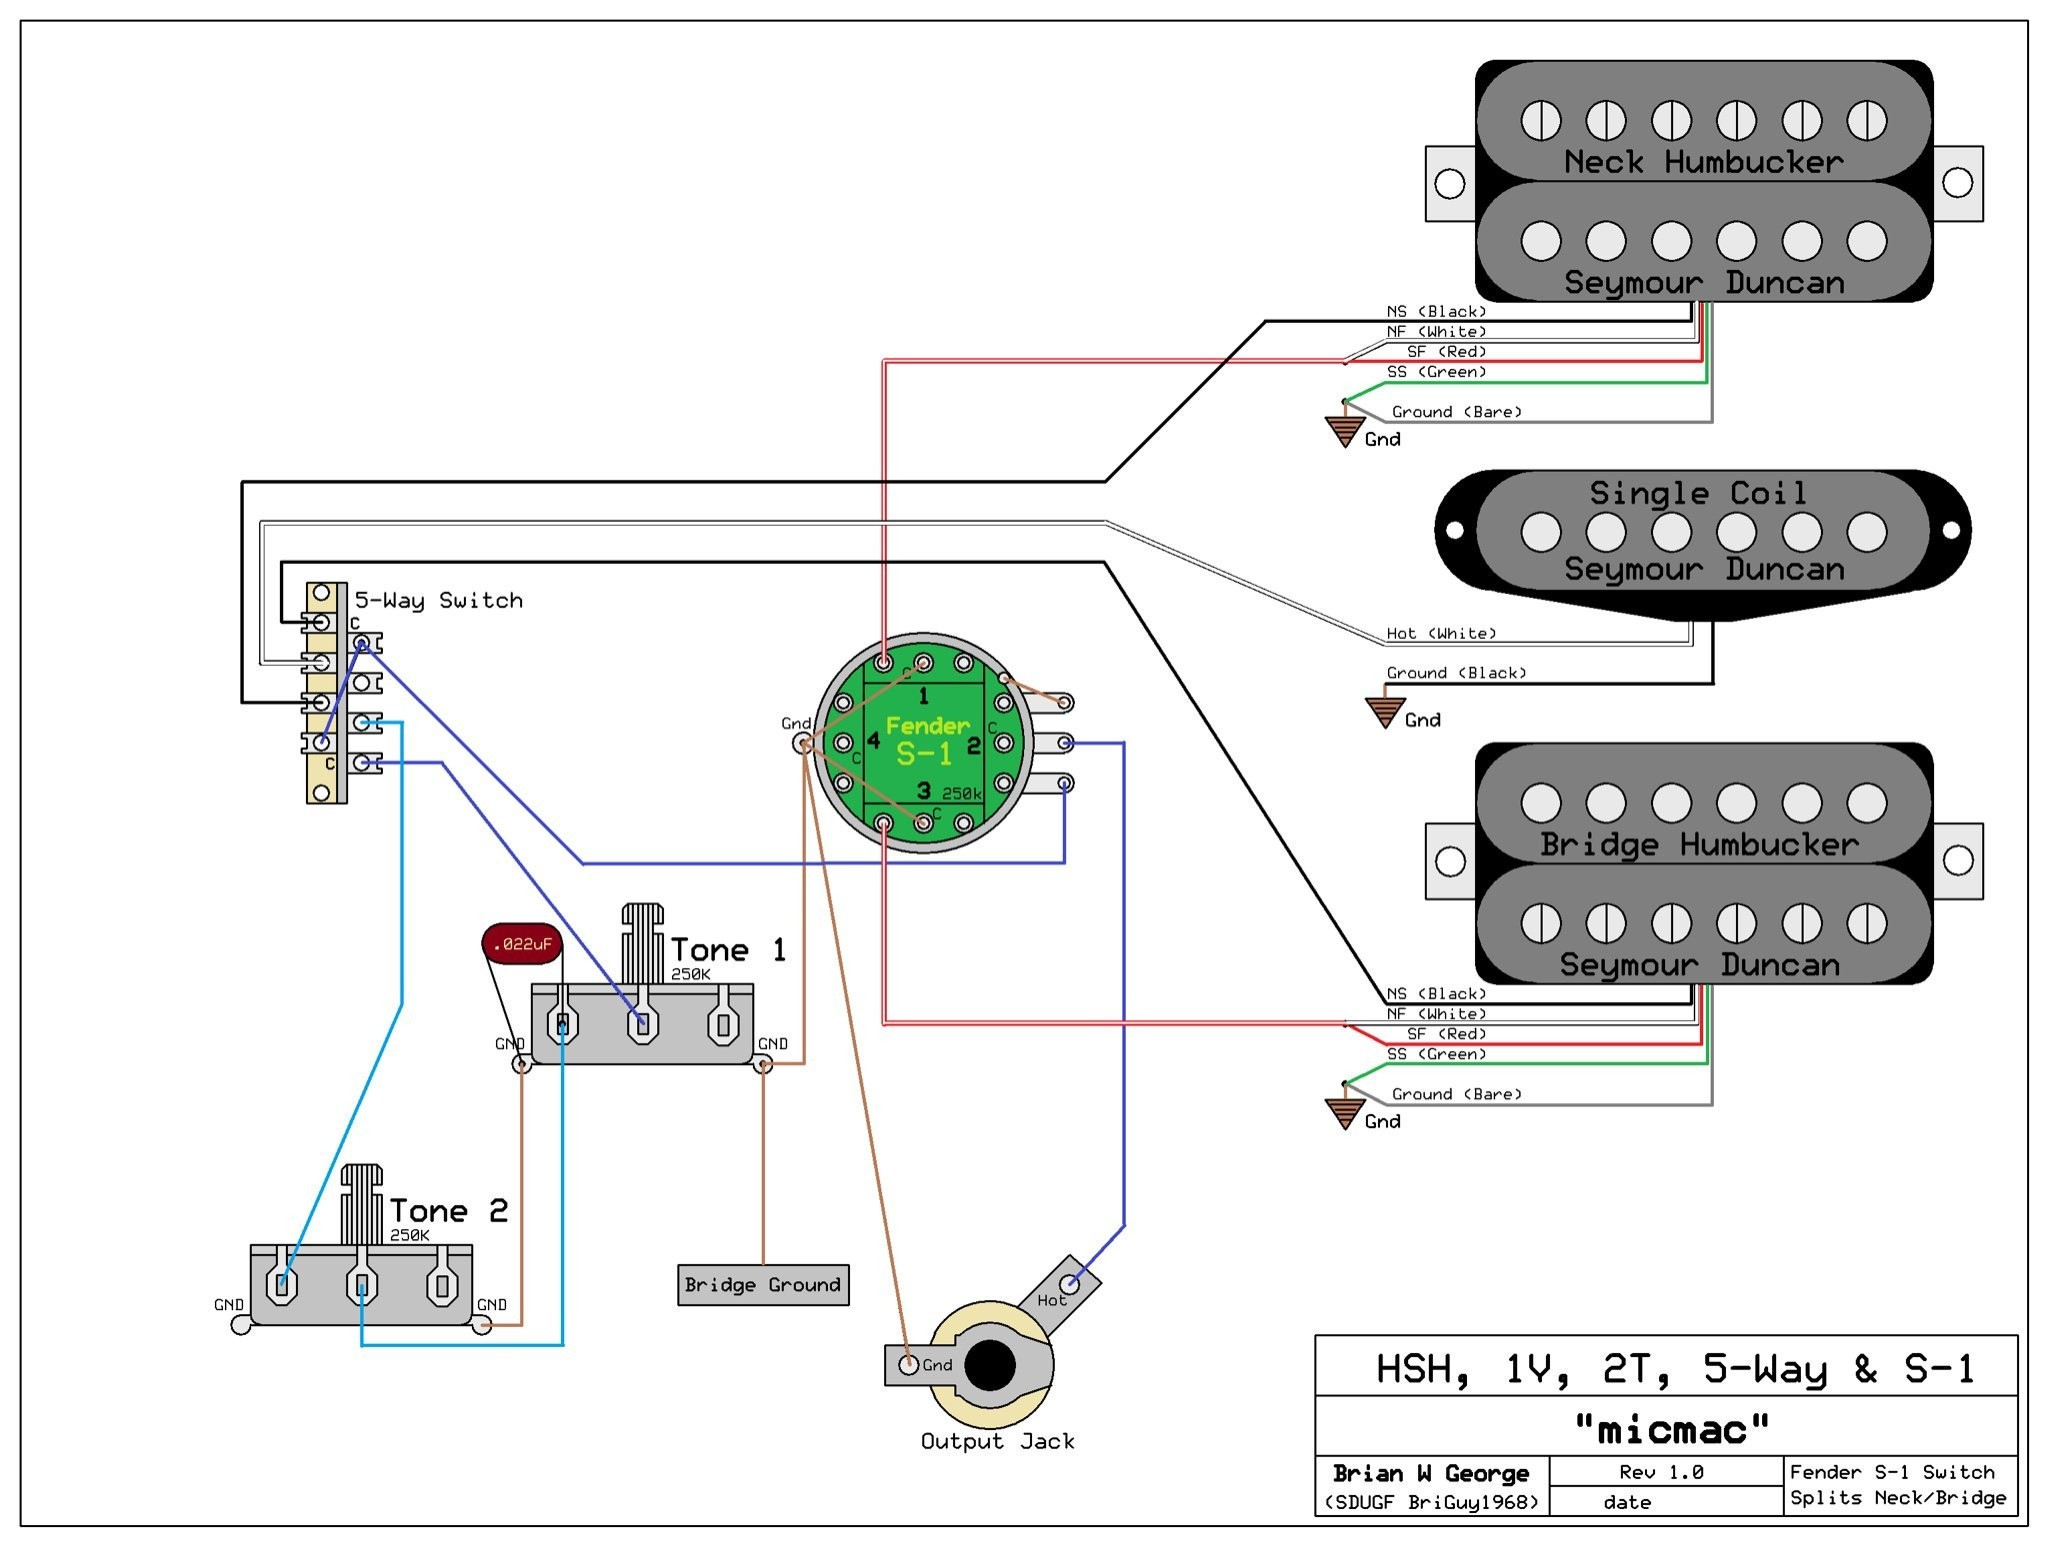 Fender telecaster wiring diagram inspirational wiring diagram image wiring diagram for a telecaster guitar best wiring diagram guitar 3 way switch valid 3 way asfbconference2016 Choice Image